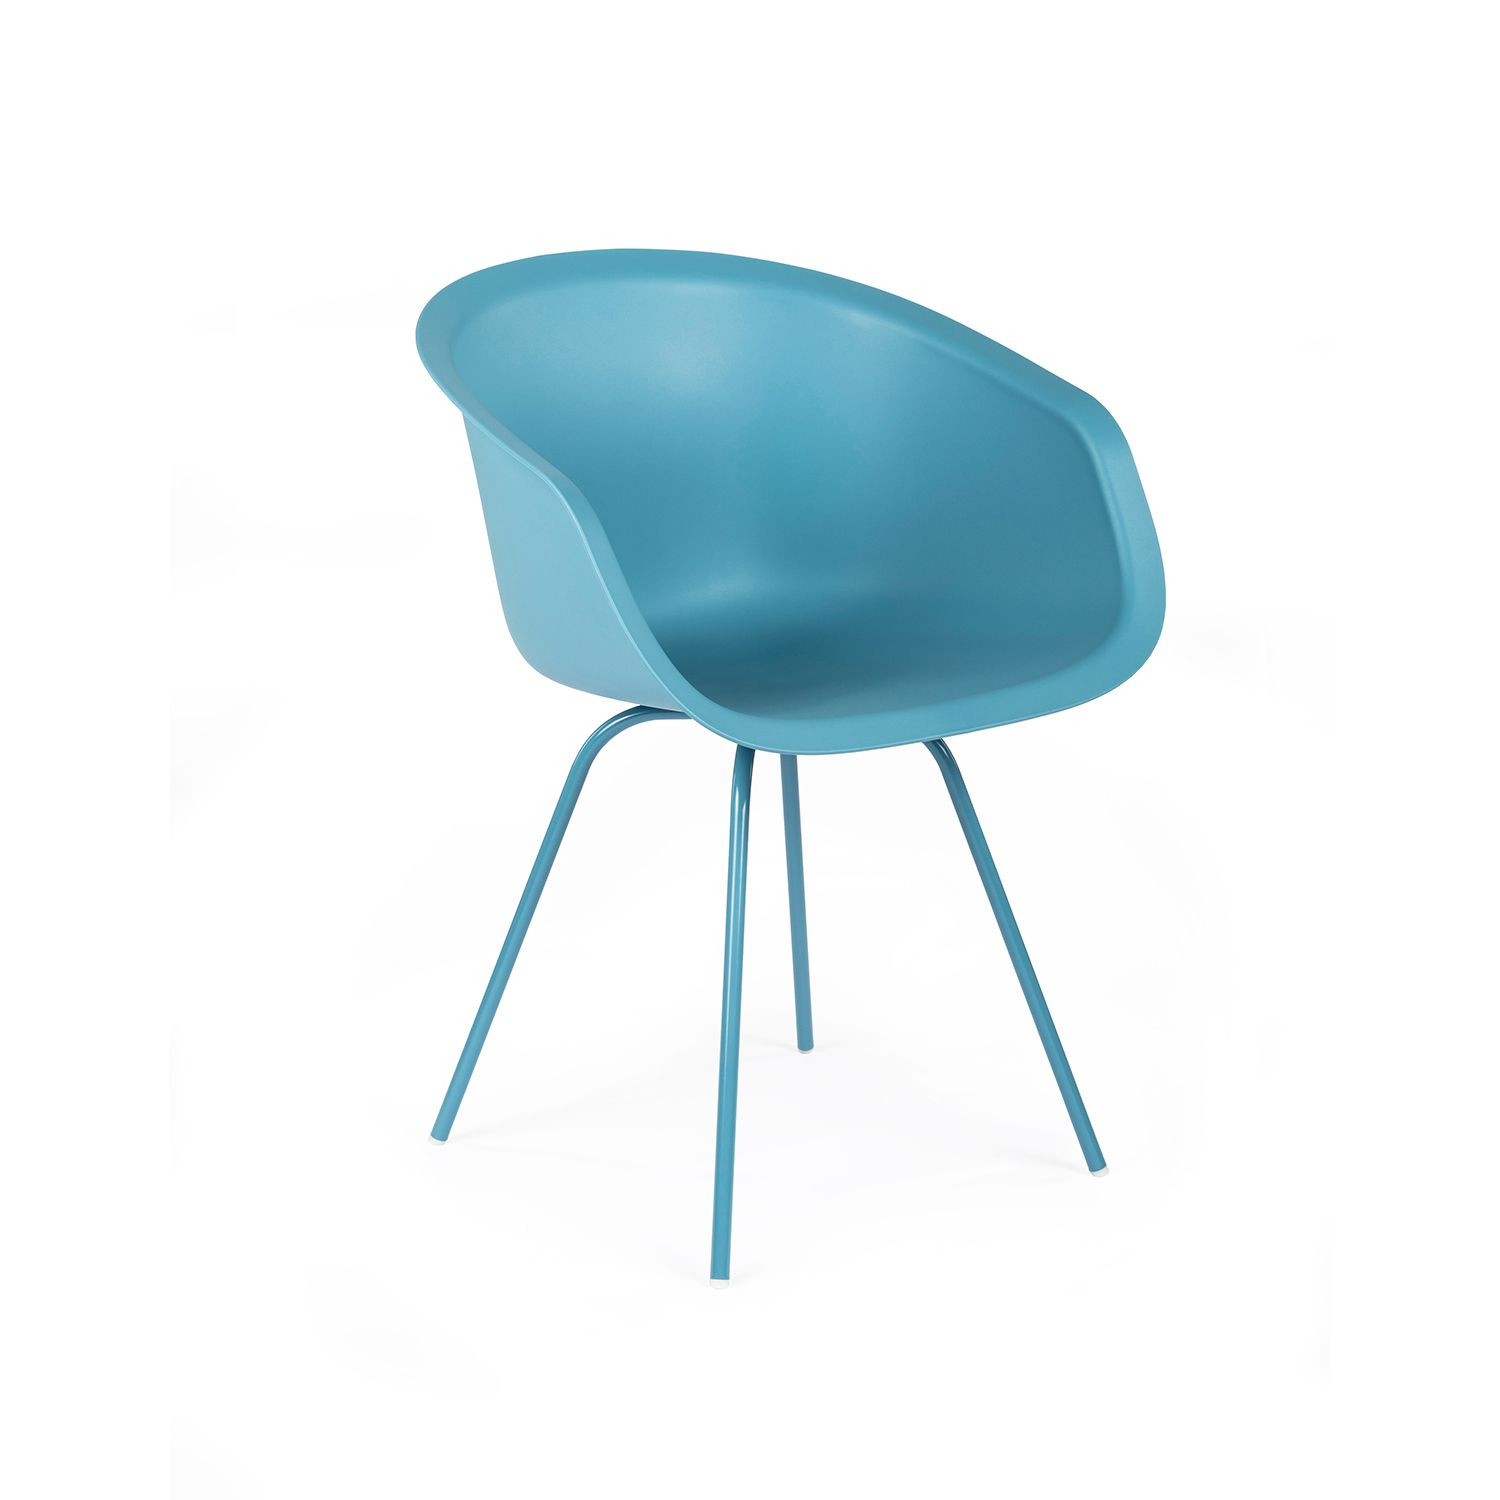 this bucket chair